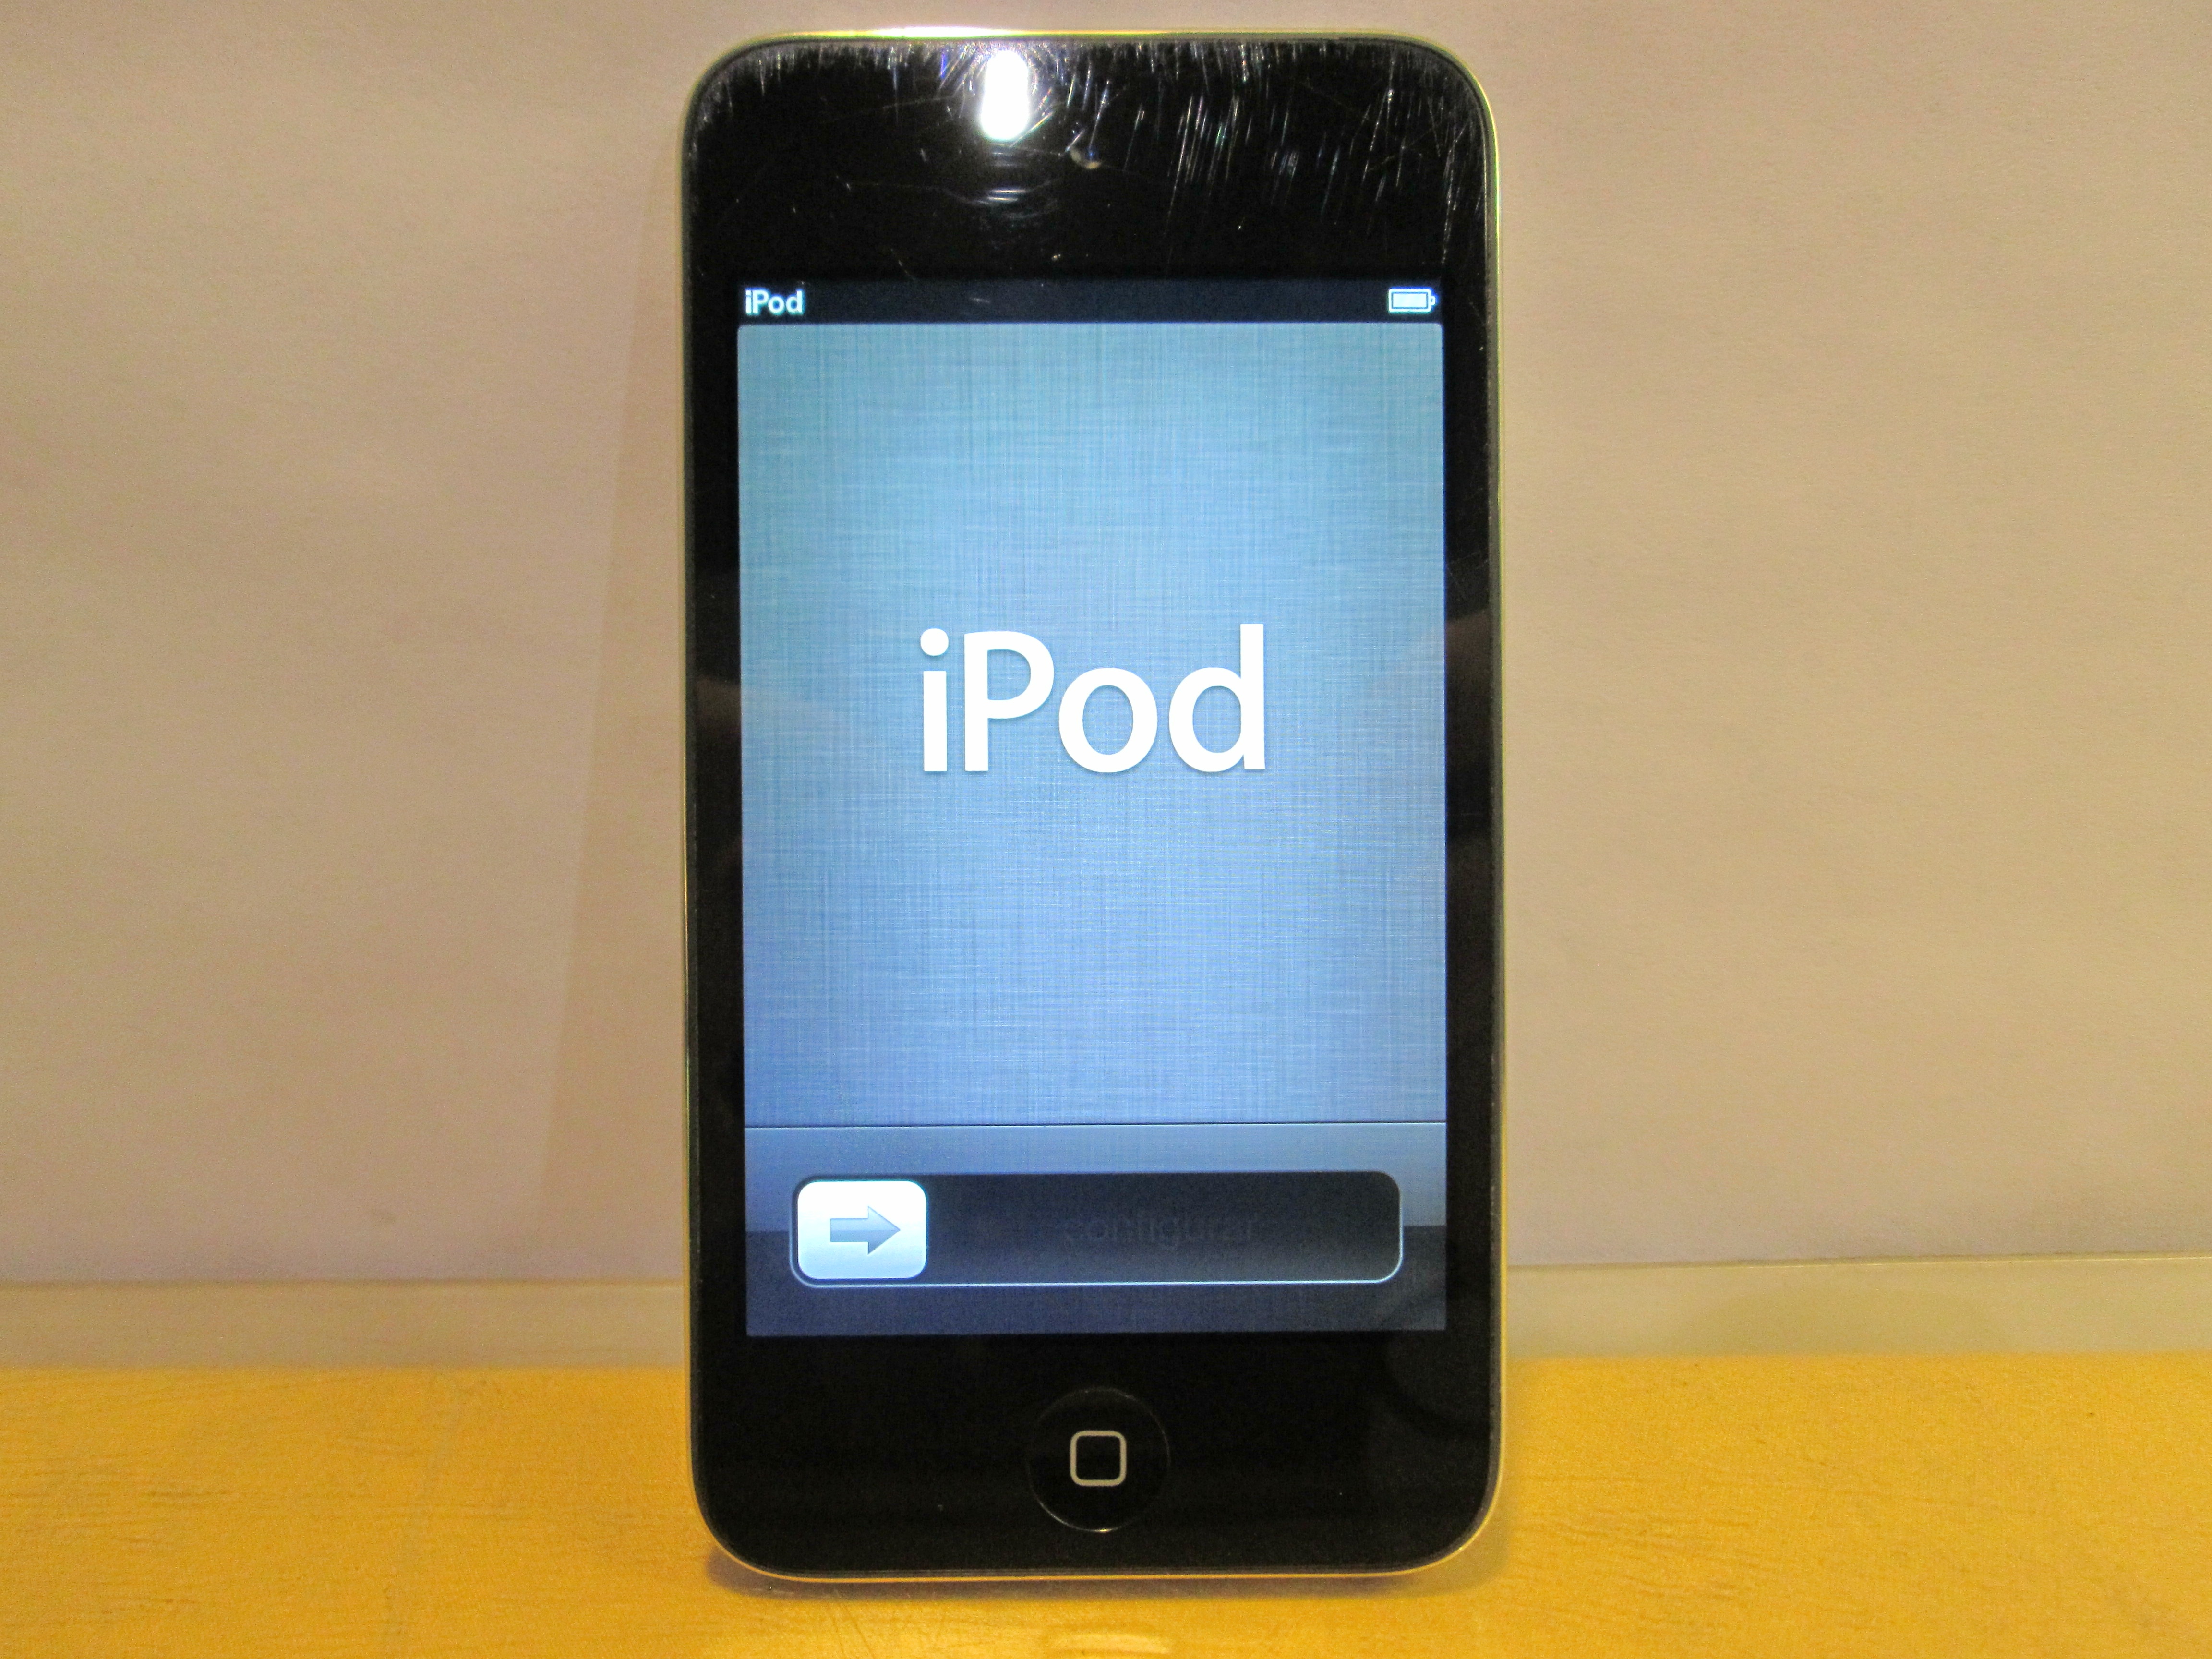 Apple iPod Touch 4th Generation Black (8 GB) | eBay